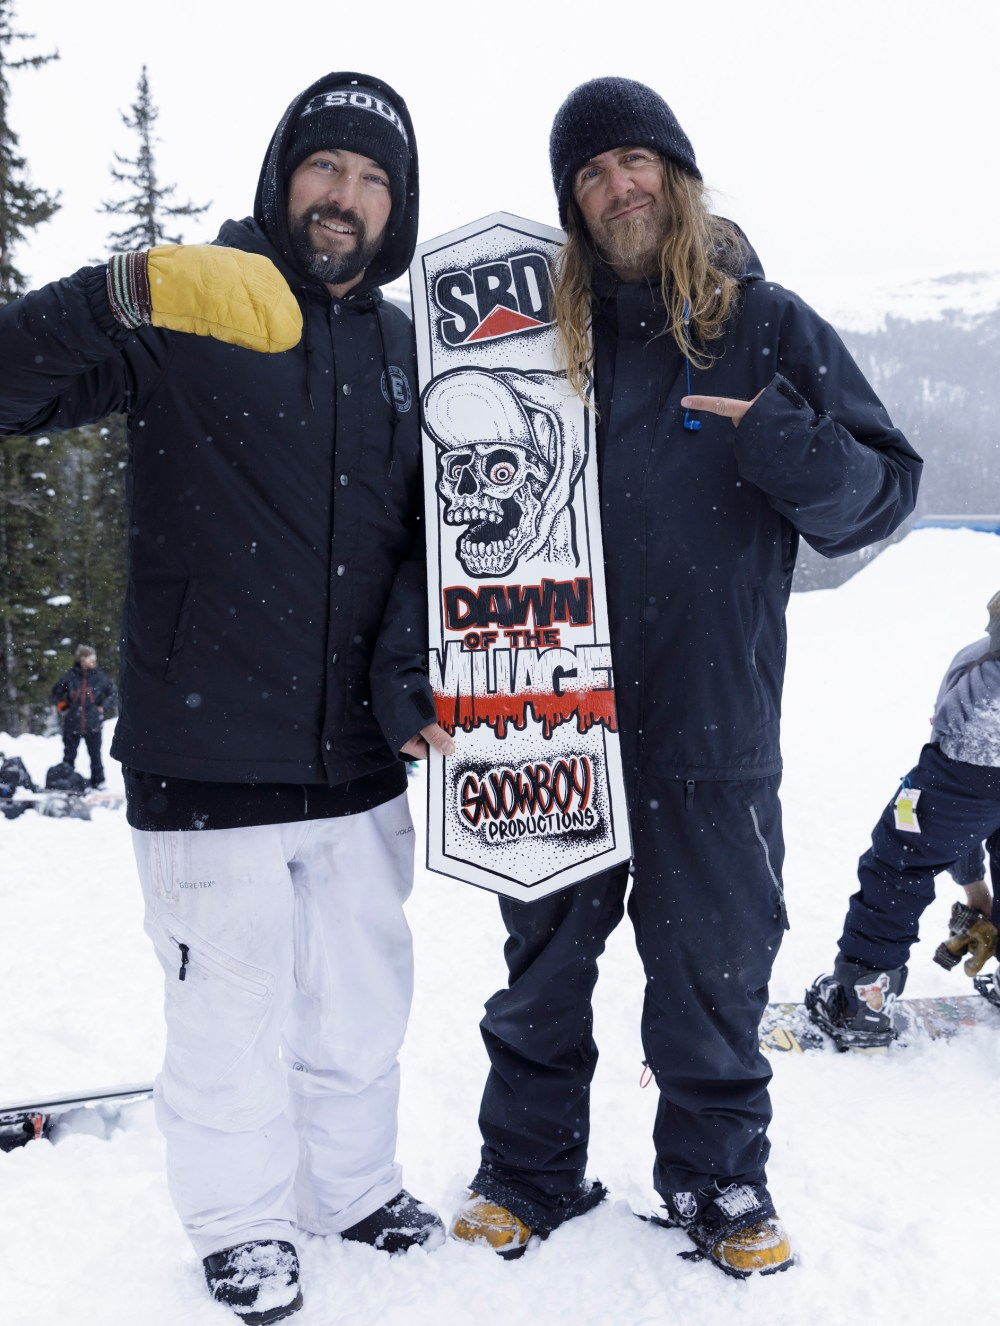 Web9 – Dwayne Weibe with his handpainted board for Krush